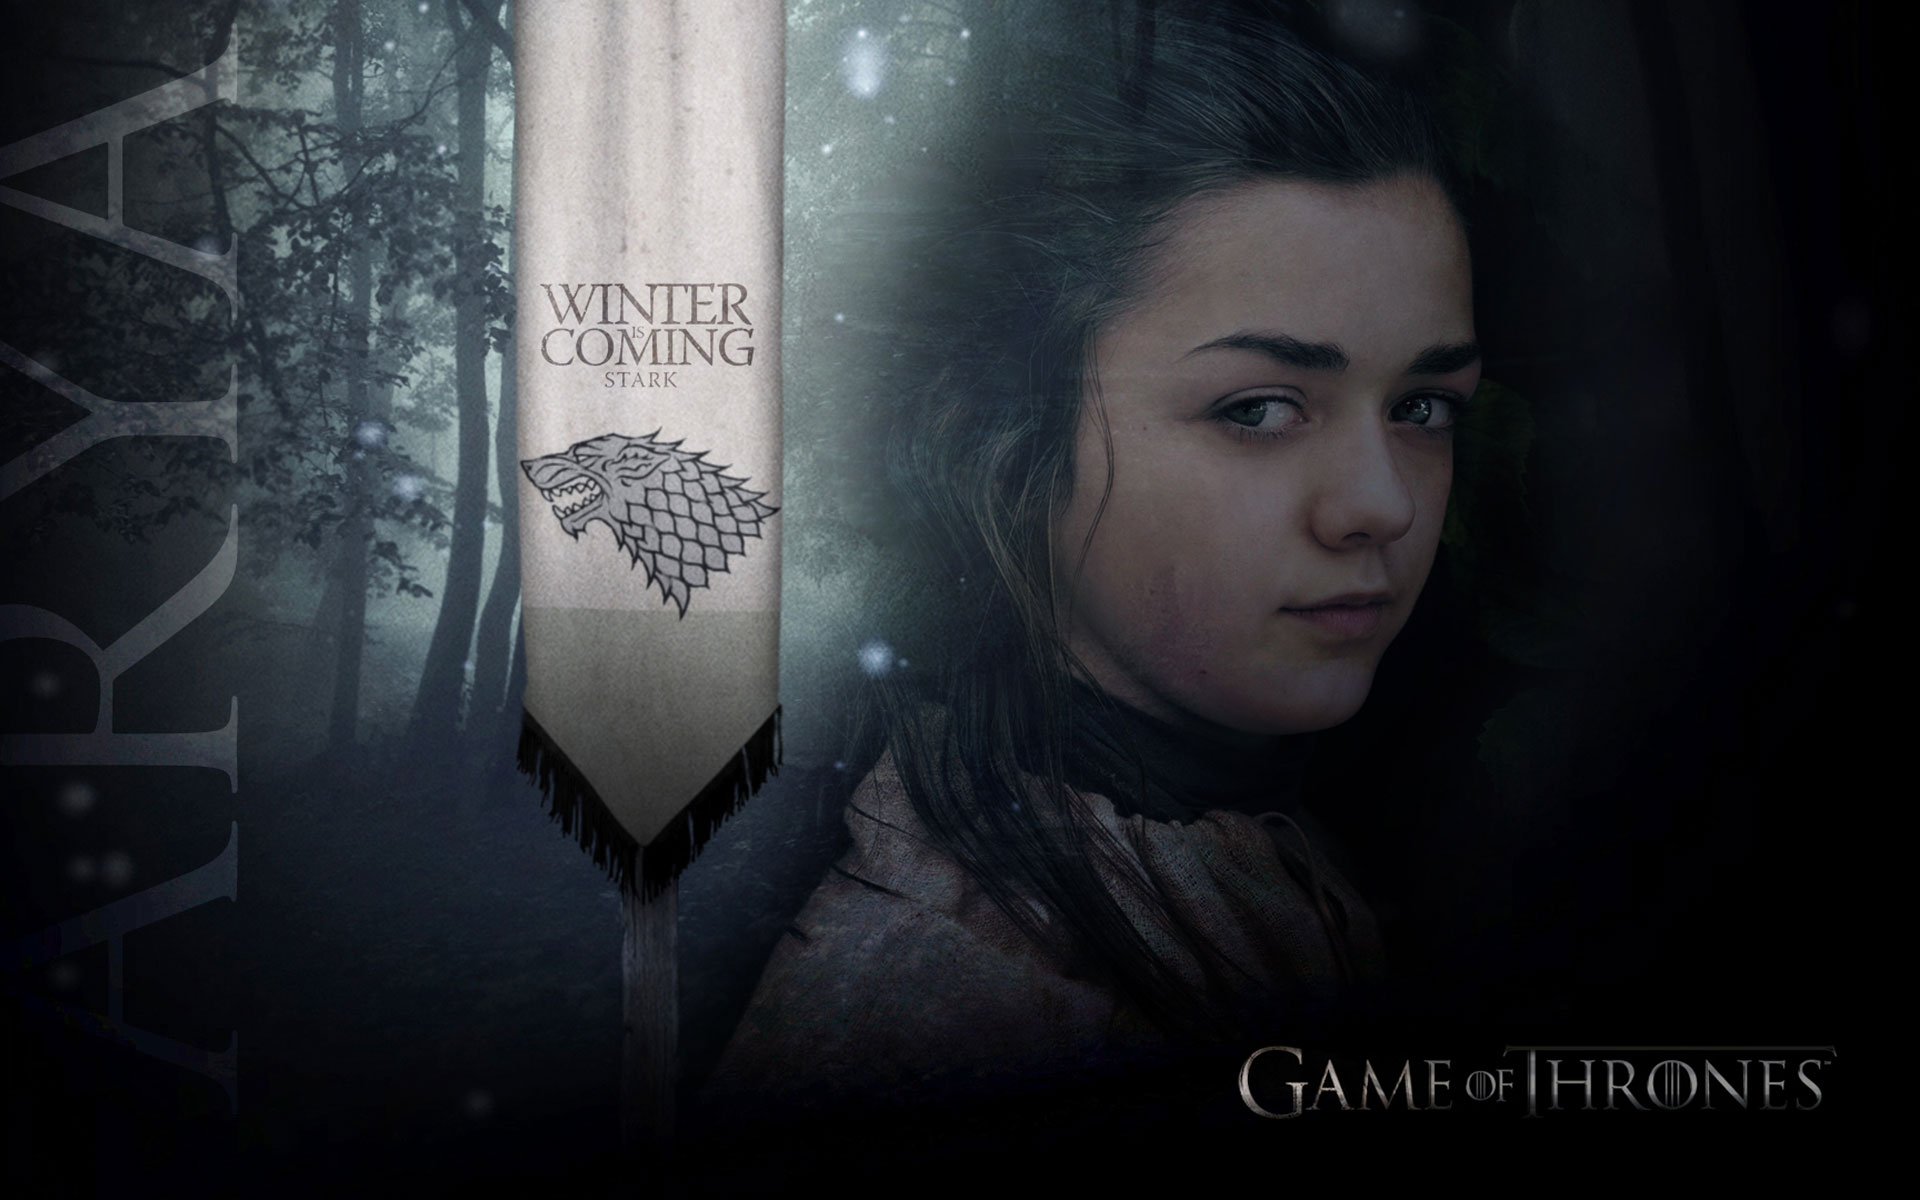 Game Of Thrones 4665 Hd Wallpapers in Games   Imagescicom 1920x1200